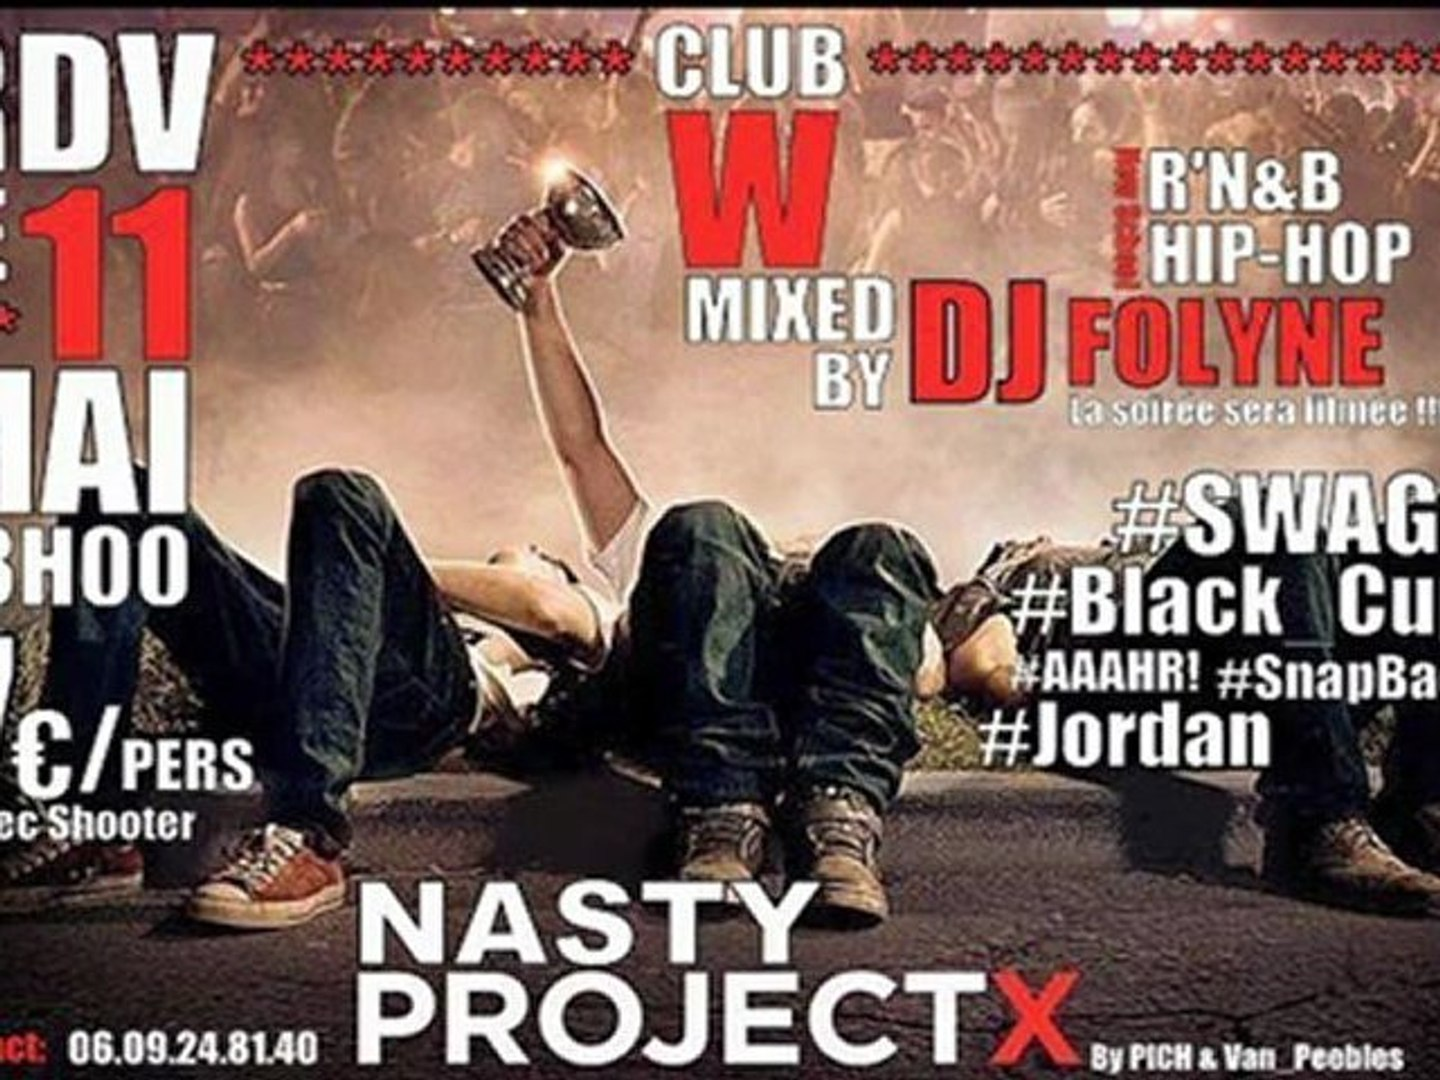 NASTY PROJECT X EVENTS